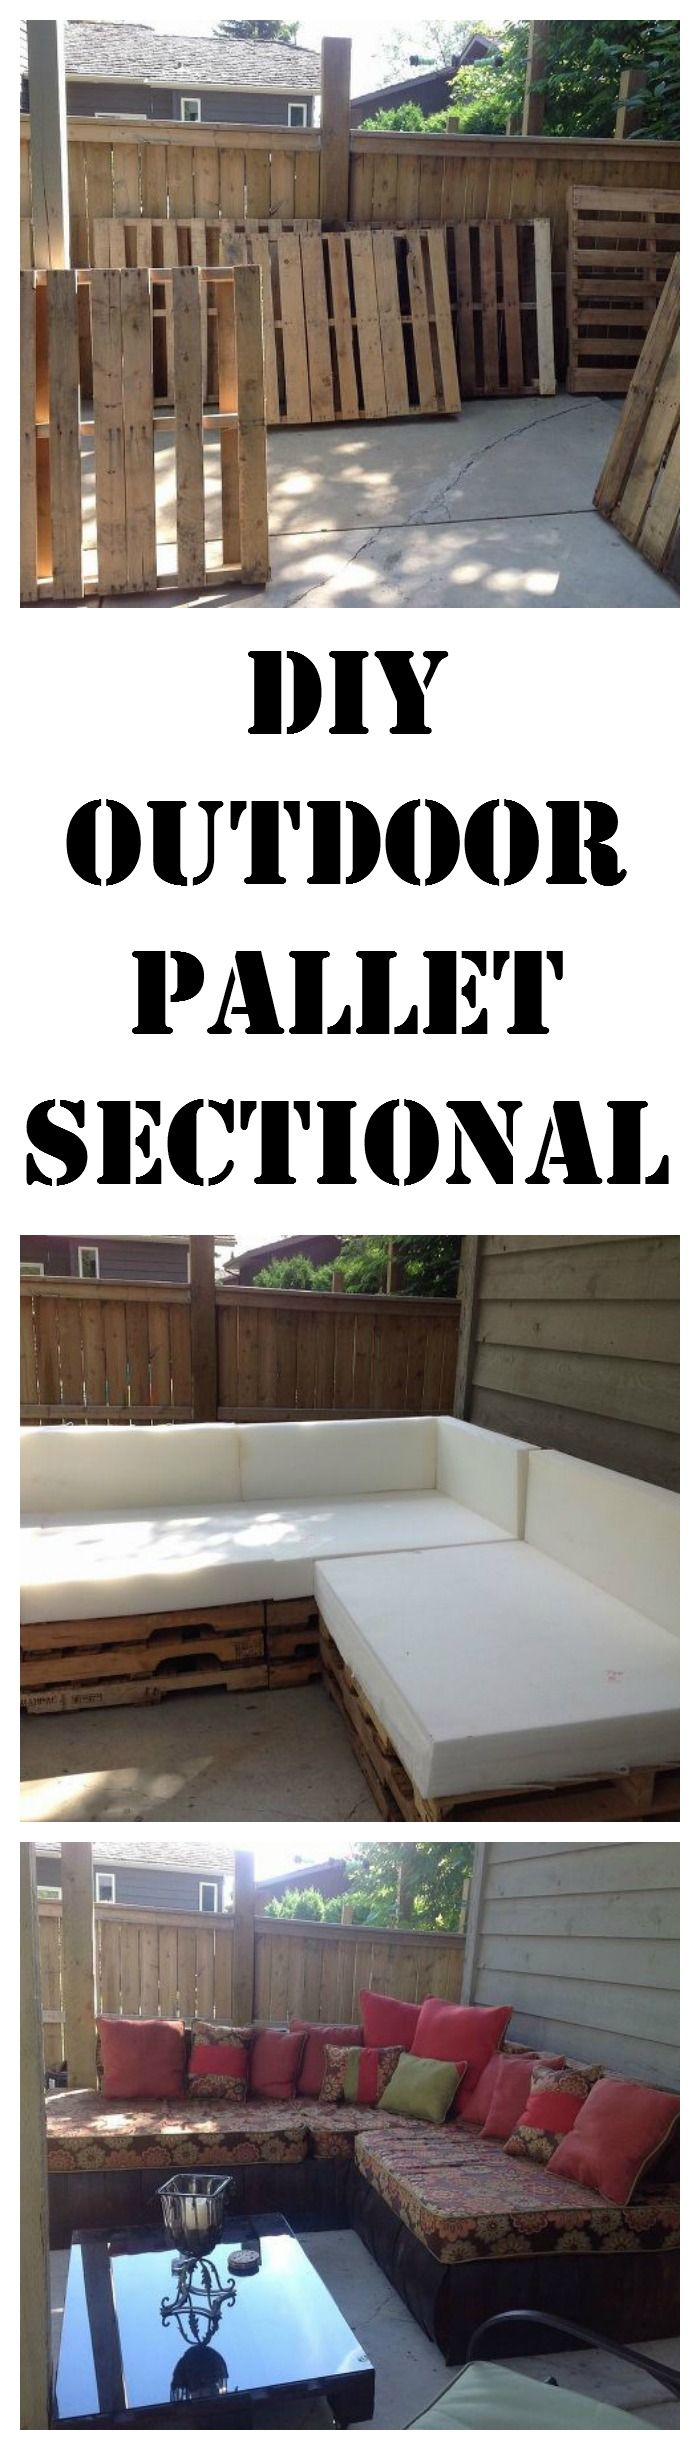 DIY an outdoor sectional from pallets.  http://www.hometalk.com/l/cHG